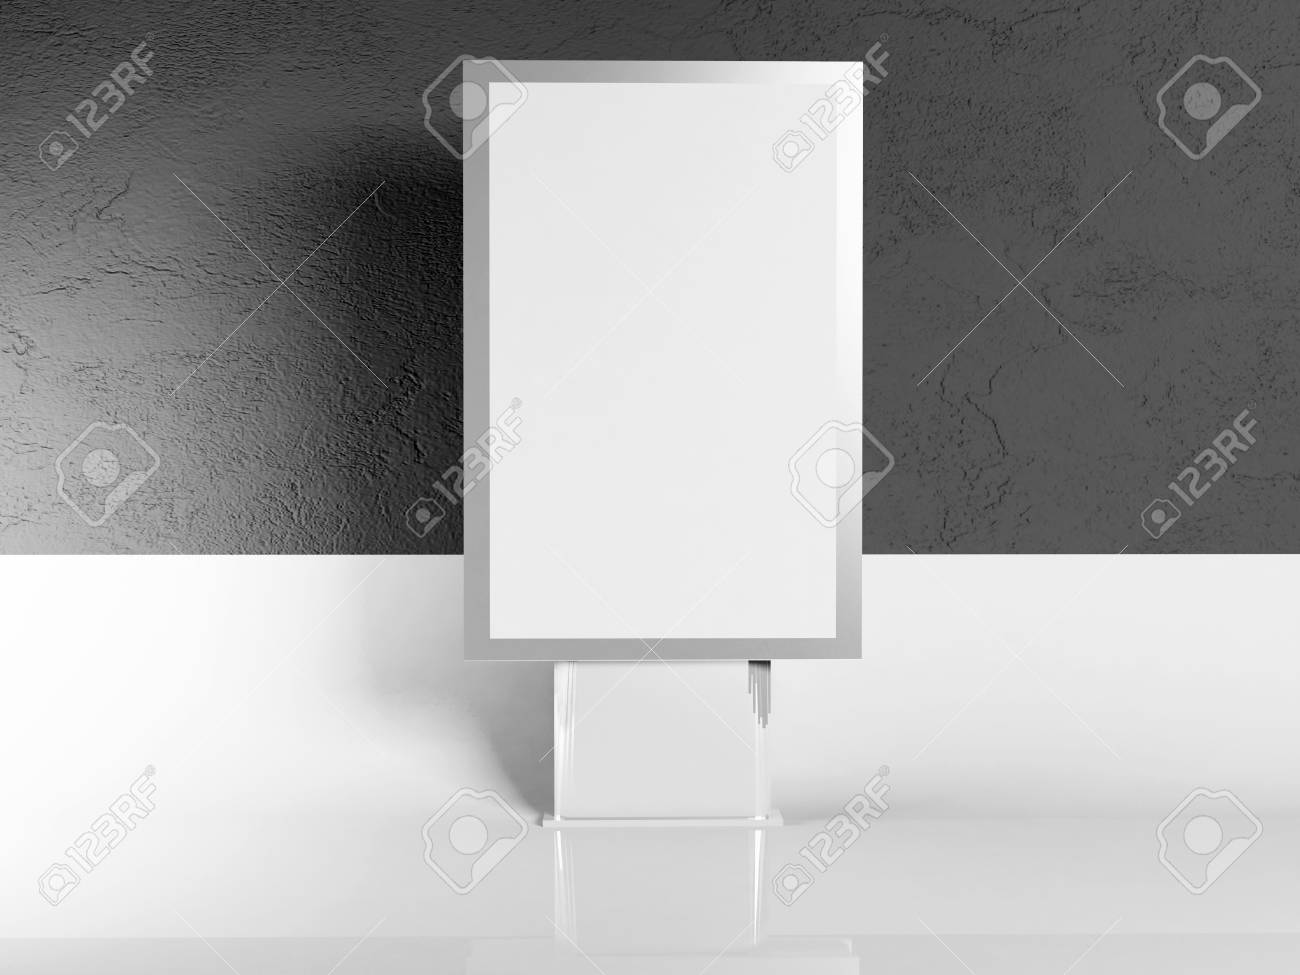 advertising billboard on white and gray background Stock Photo - 14679187